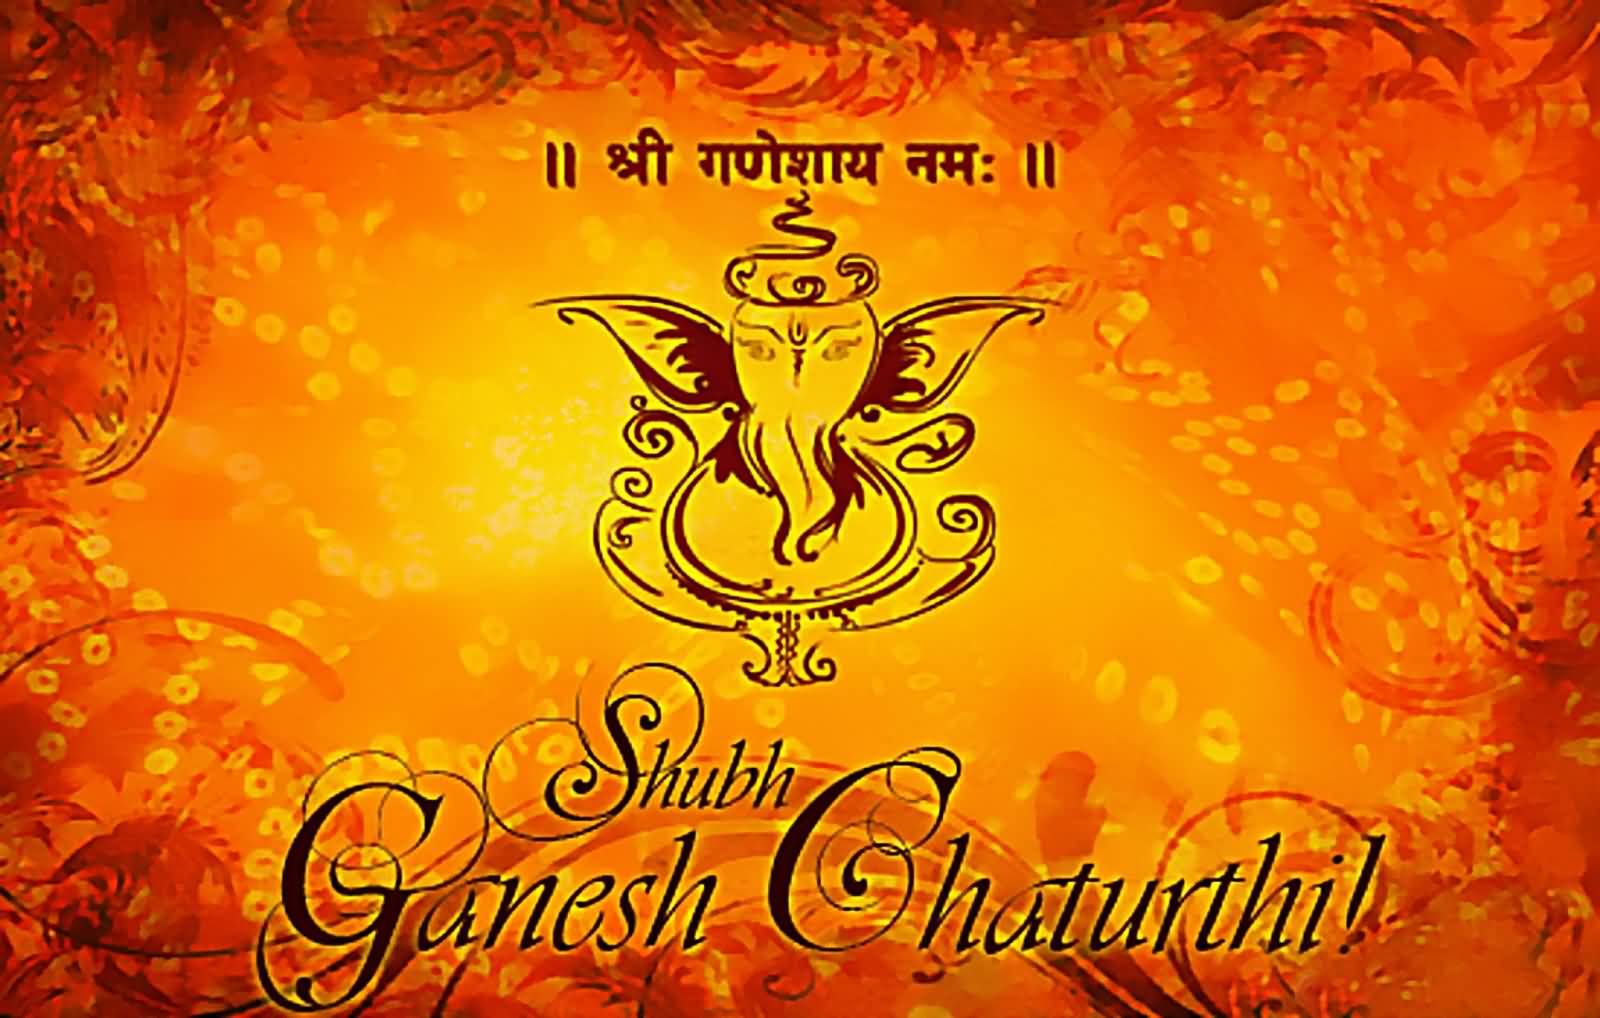 50 Very Beautiful Ganesh Chaturthi Greeting Card Pictures And Images